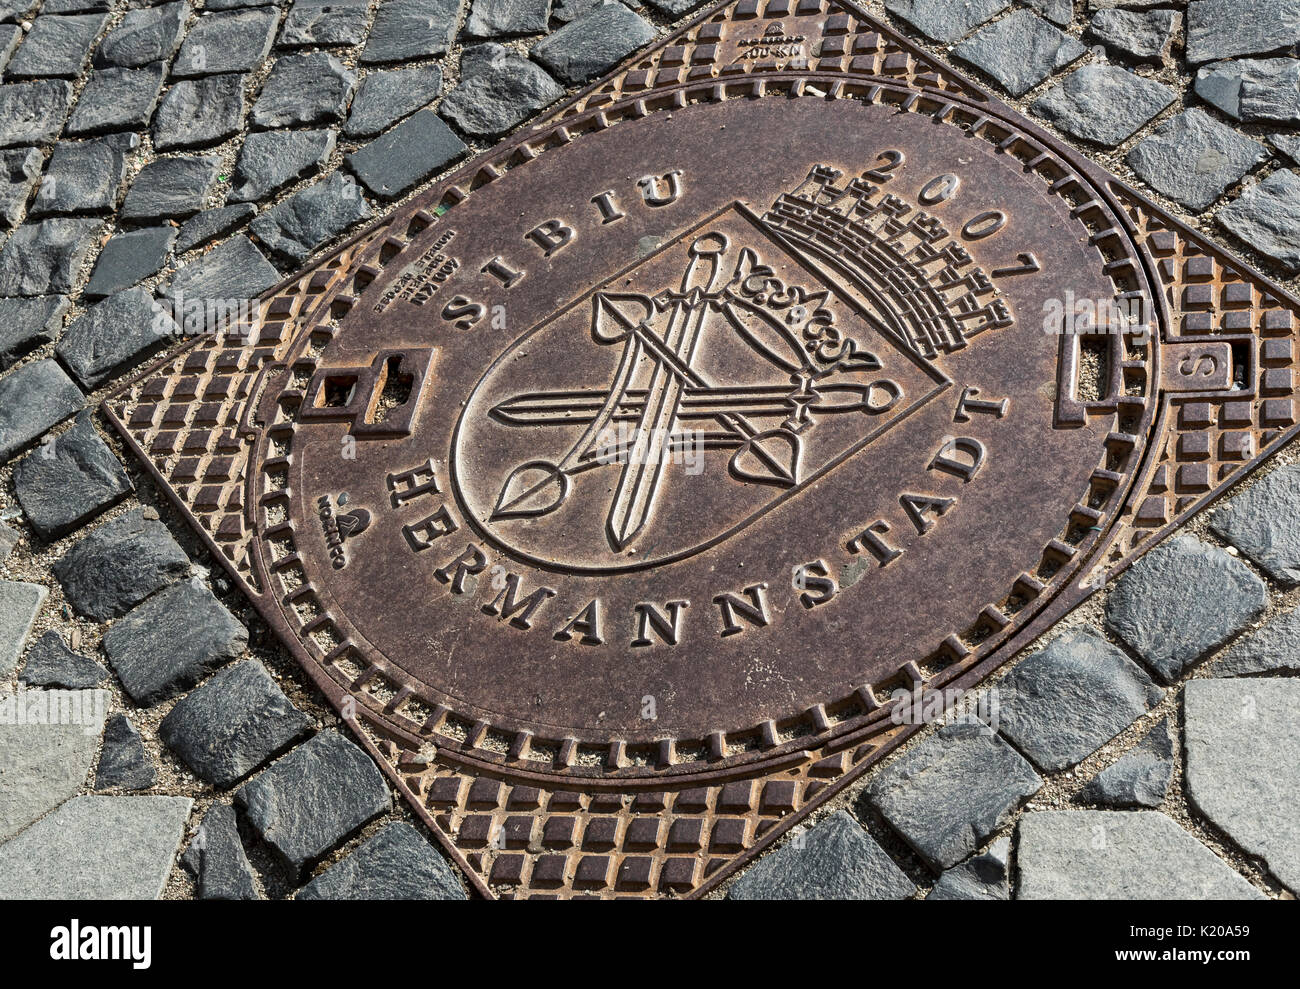 Manhole cover, Sibiu, Hermannstadt, Romania Stock Photo